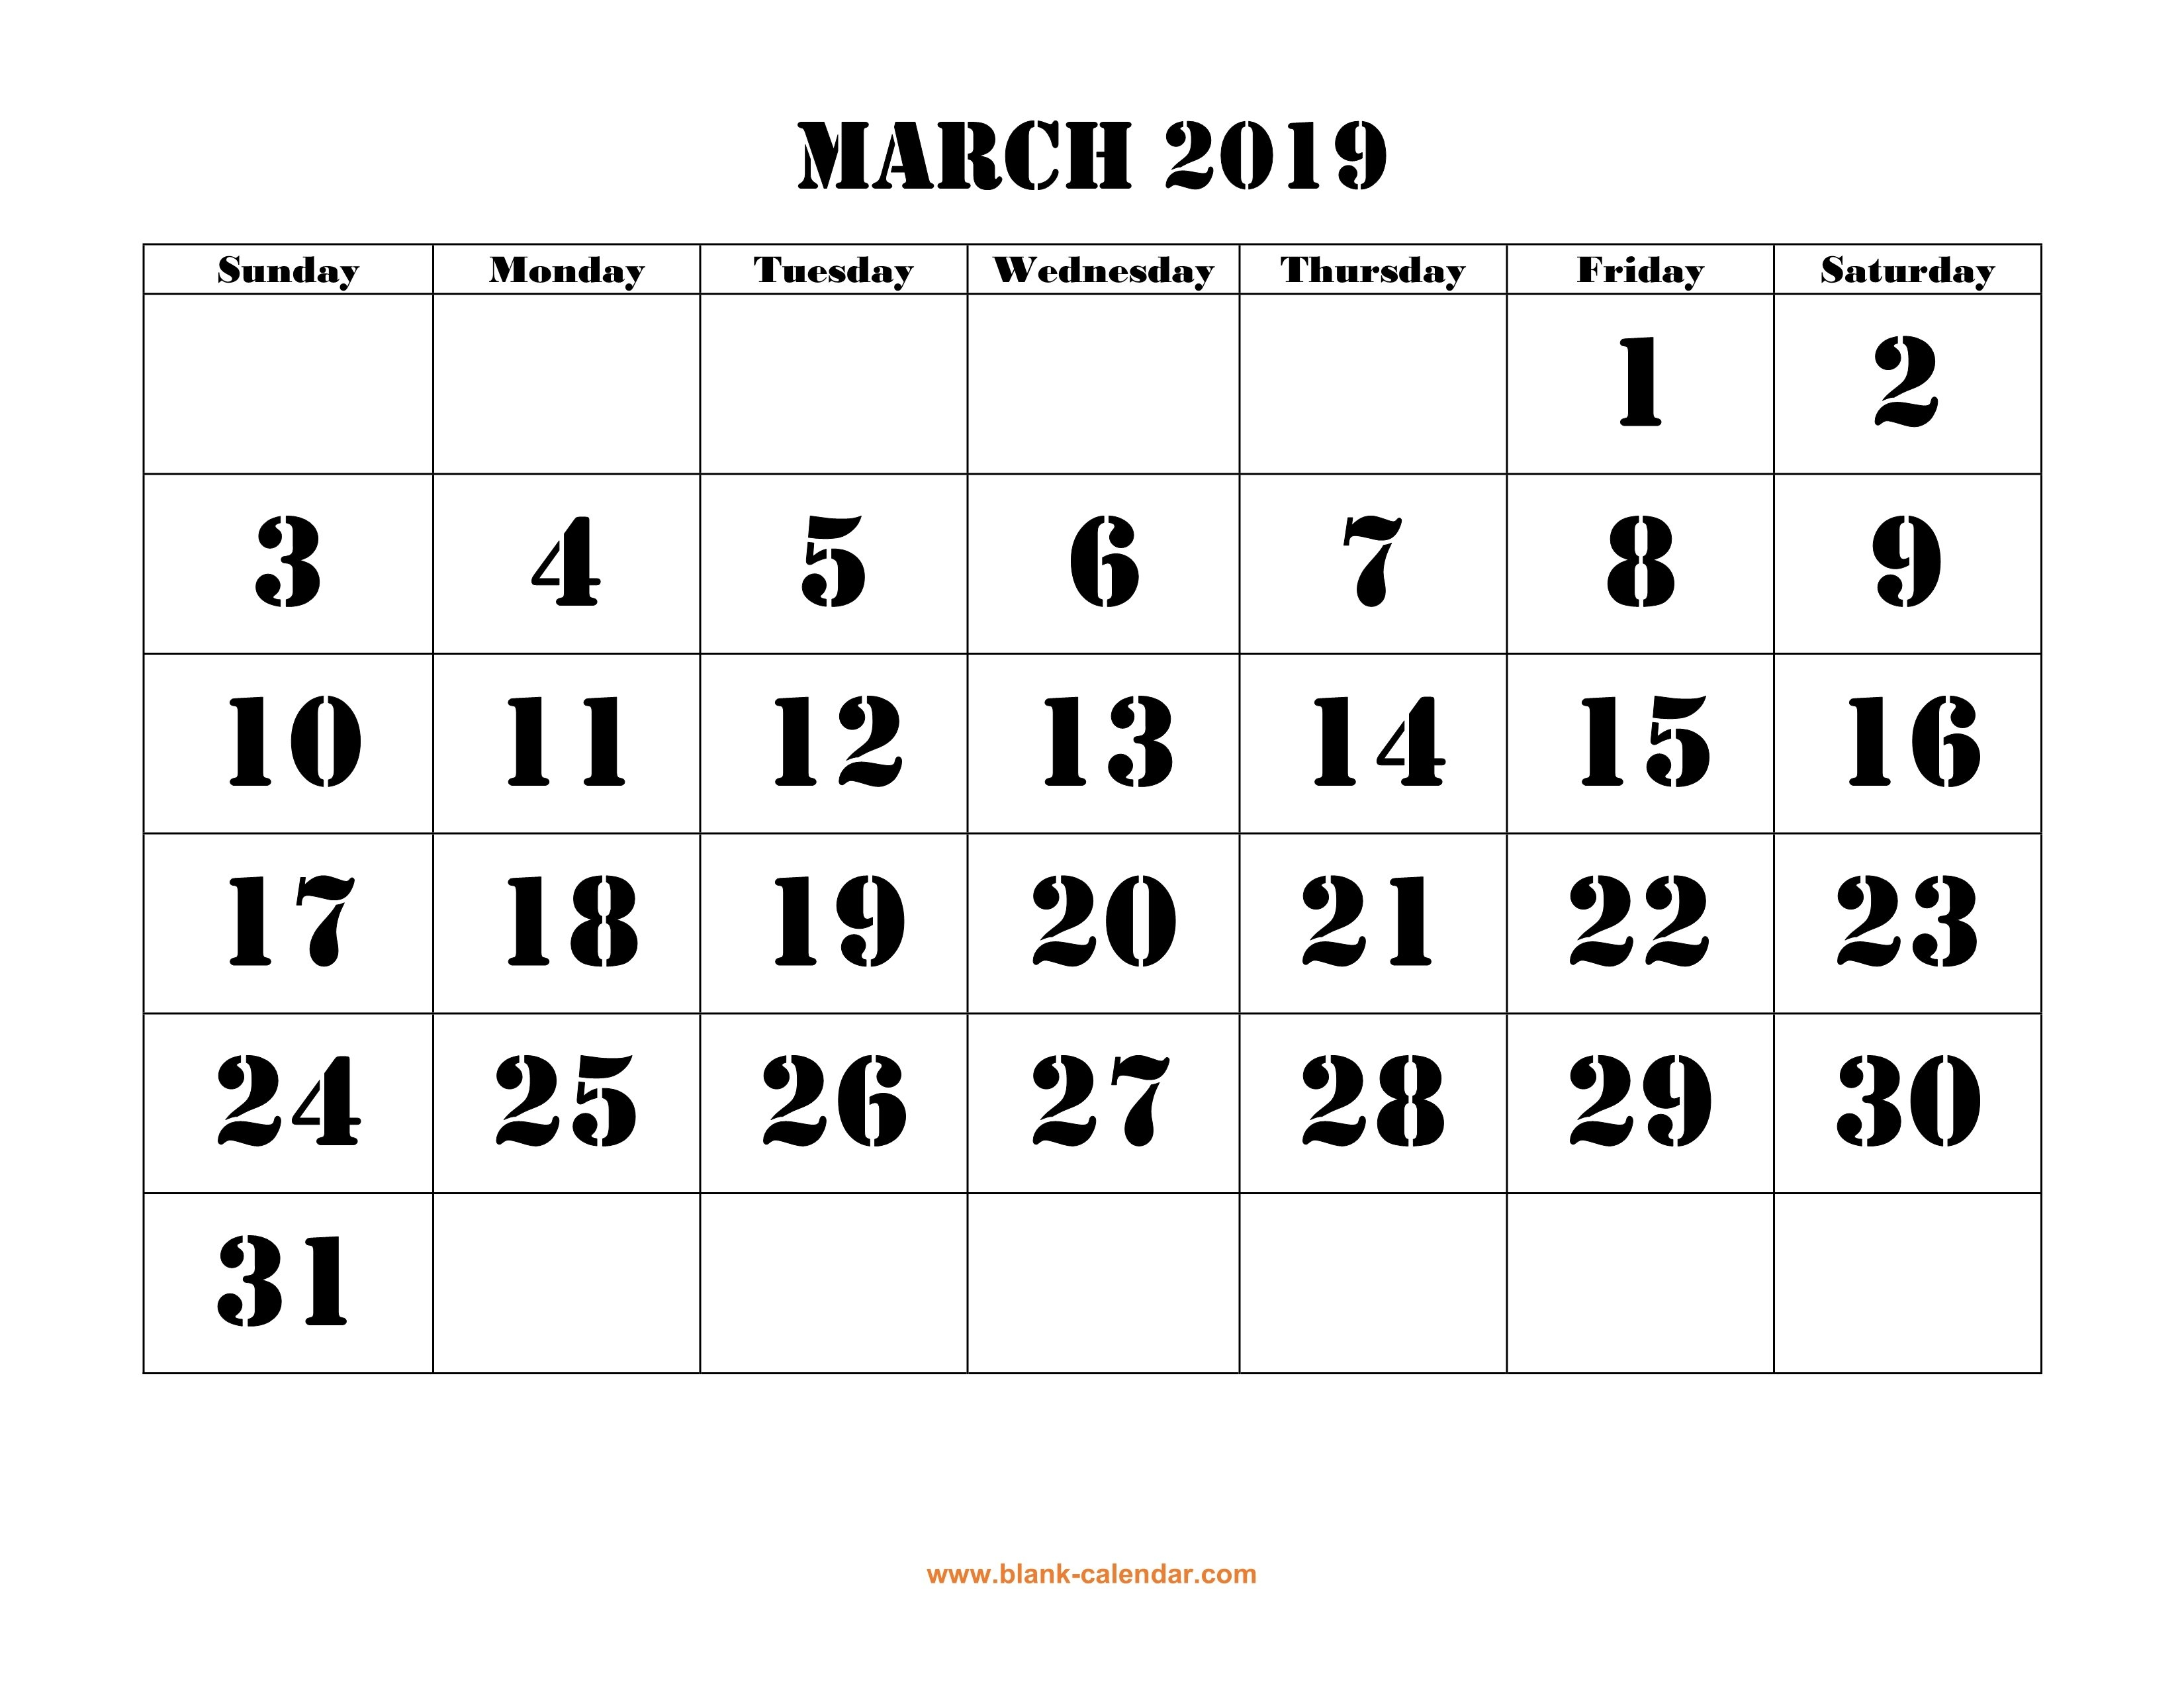 March 2019 Printable Calendar | Free Download Monthly Calendar Templates Calendar 2019 Large Print